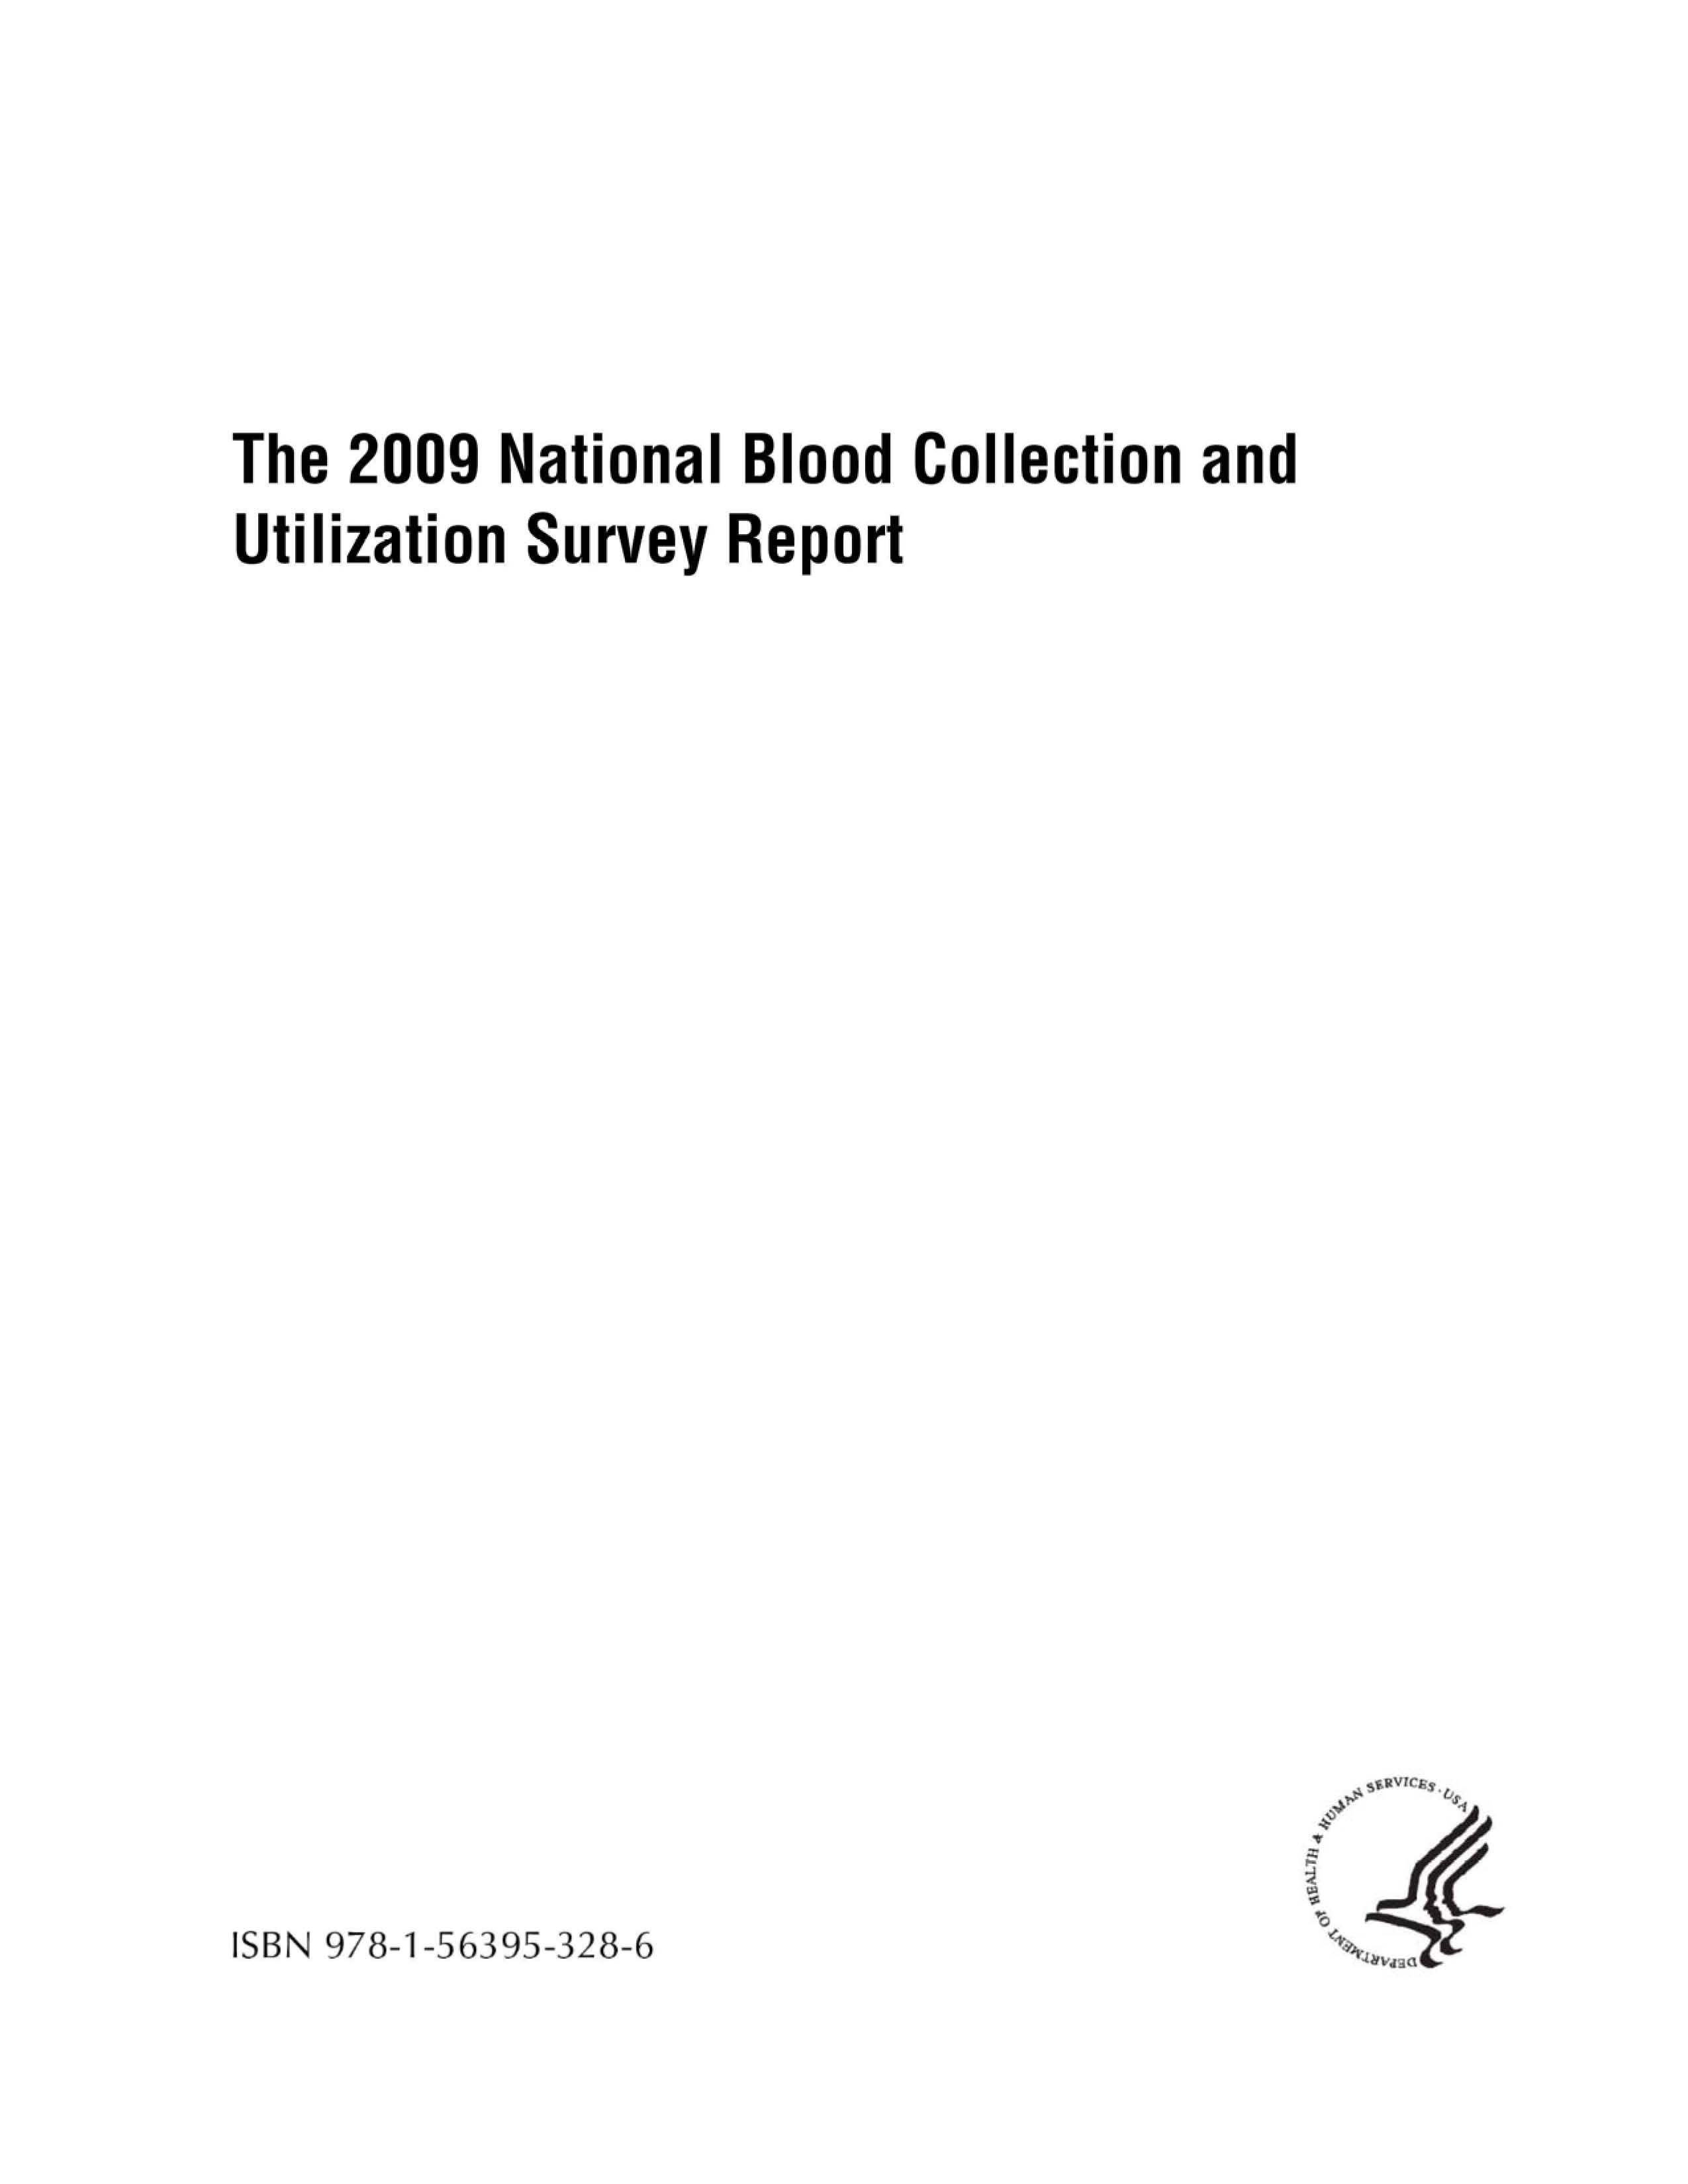 national blood collection utilization survey gov 2009 nbcus report cover